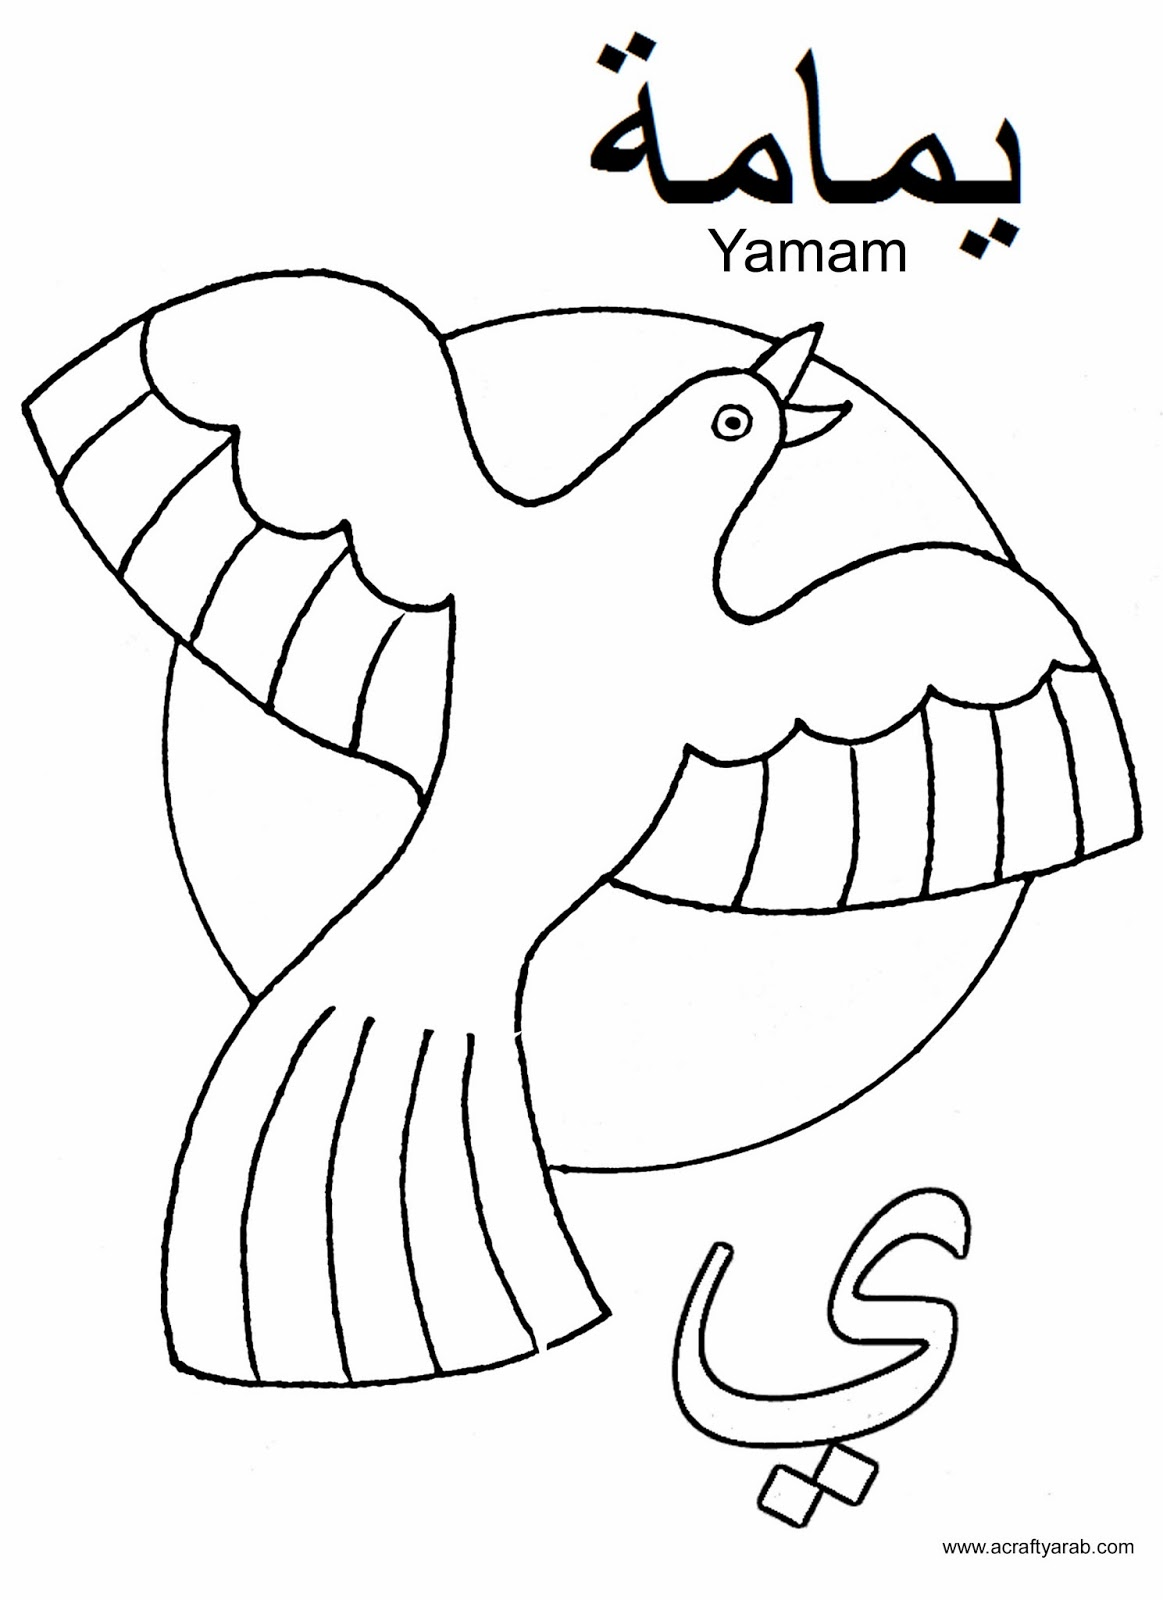 1163x1600 Arabic Alphabet Coloring Pages Ya Is For Yamam